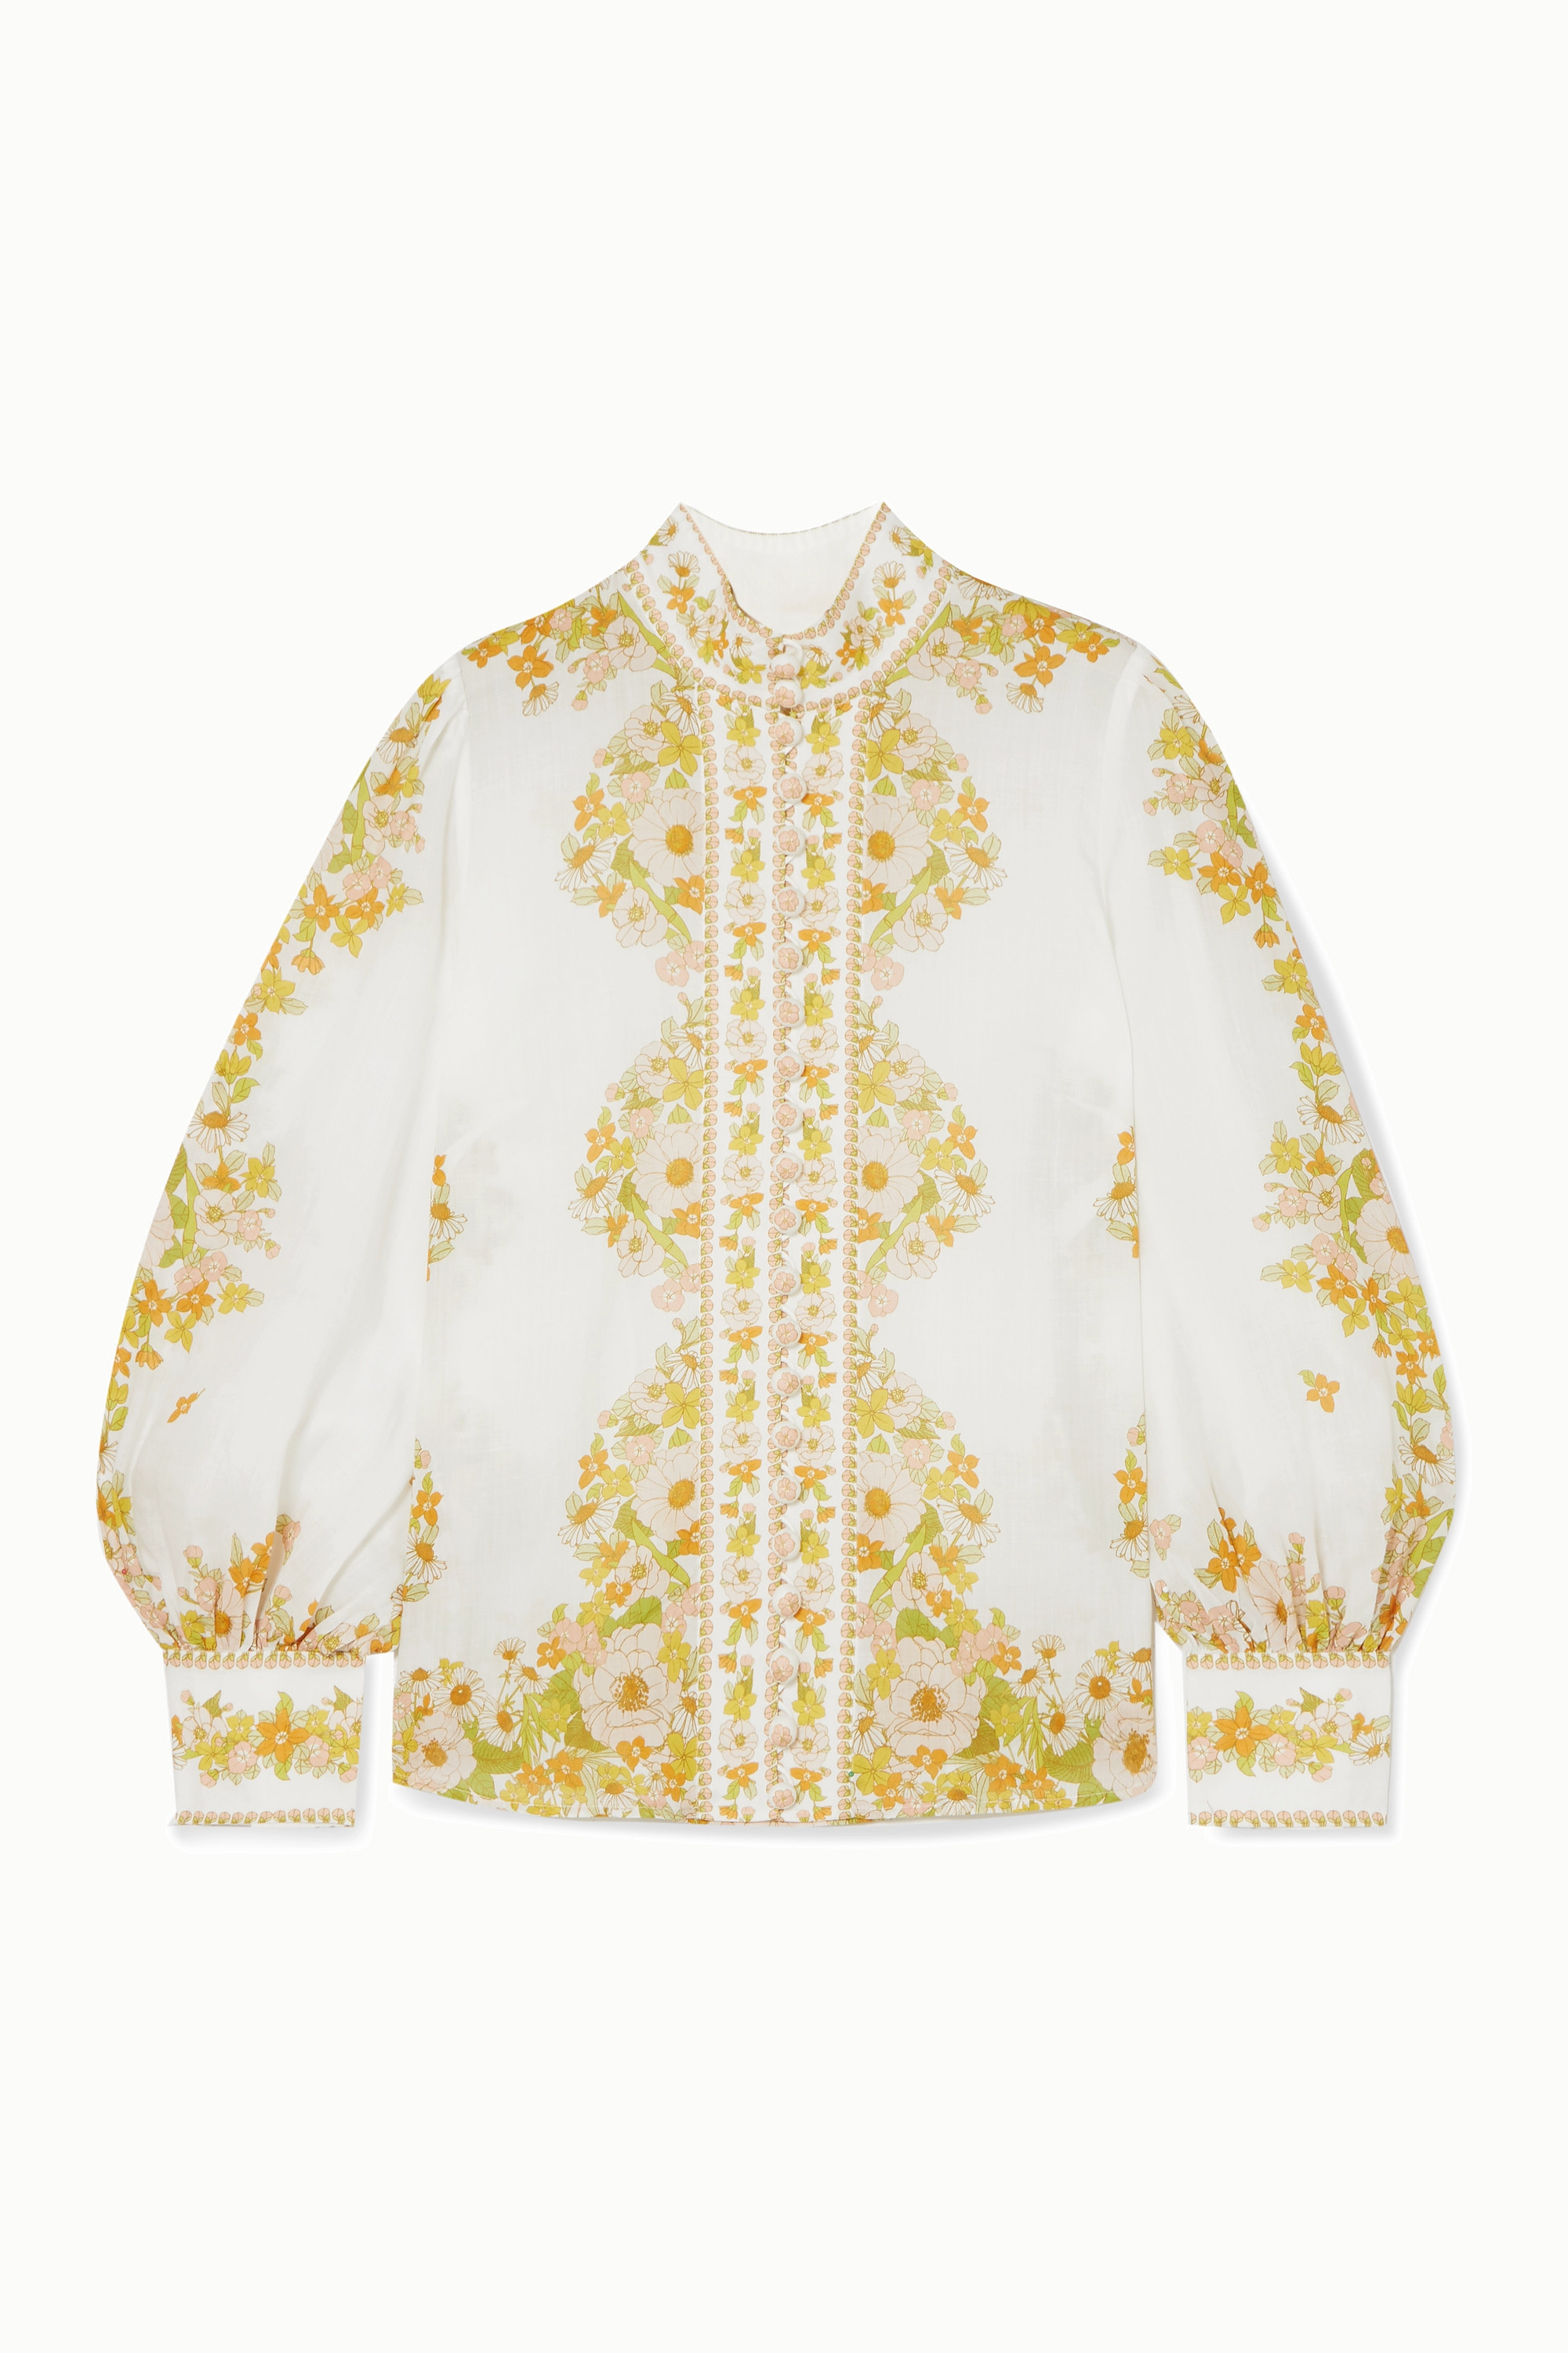 Zimmermann Super Eight Bluse aus Ramie mit Blumenprint